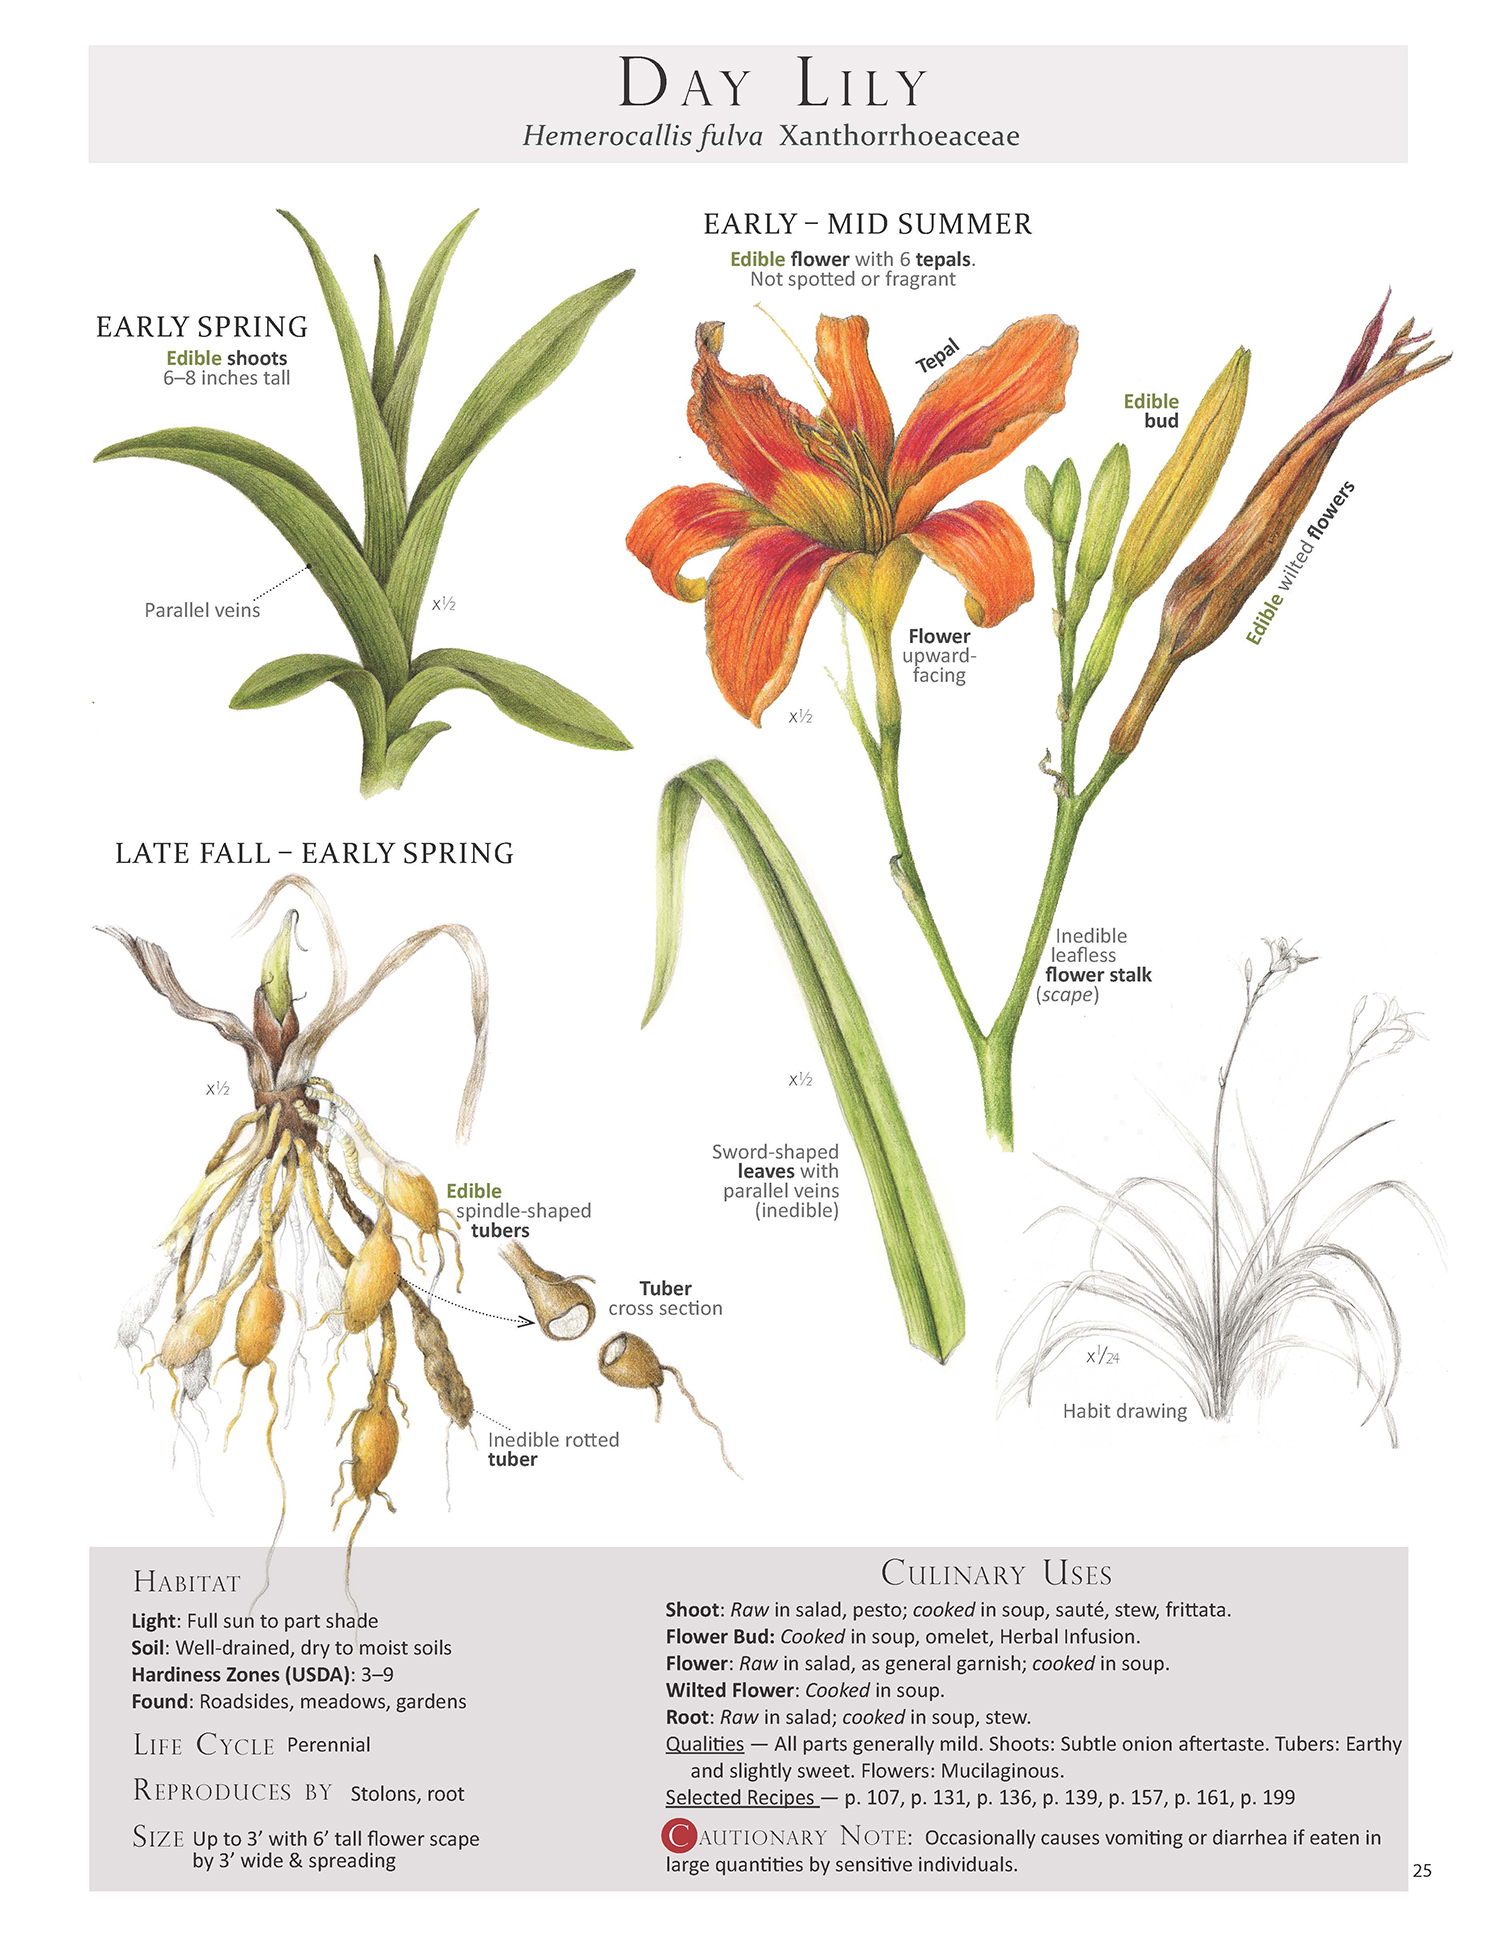 The Day Lily Plant Identification Page from the book  Foraging & Feasting